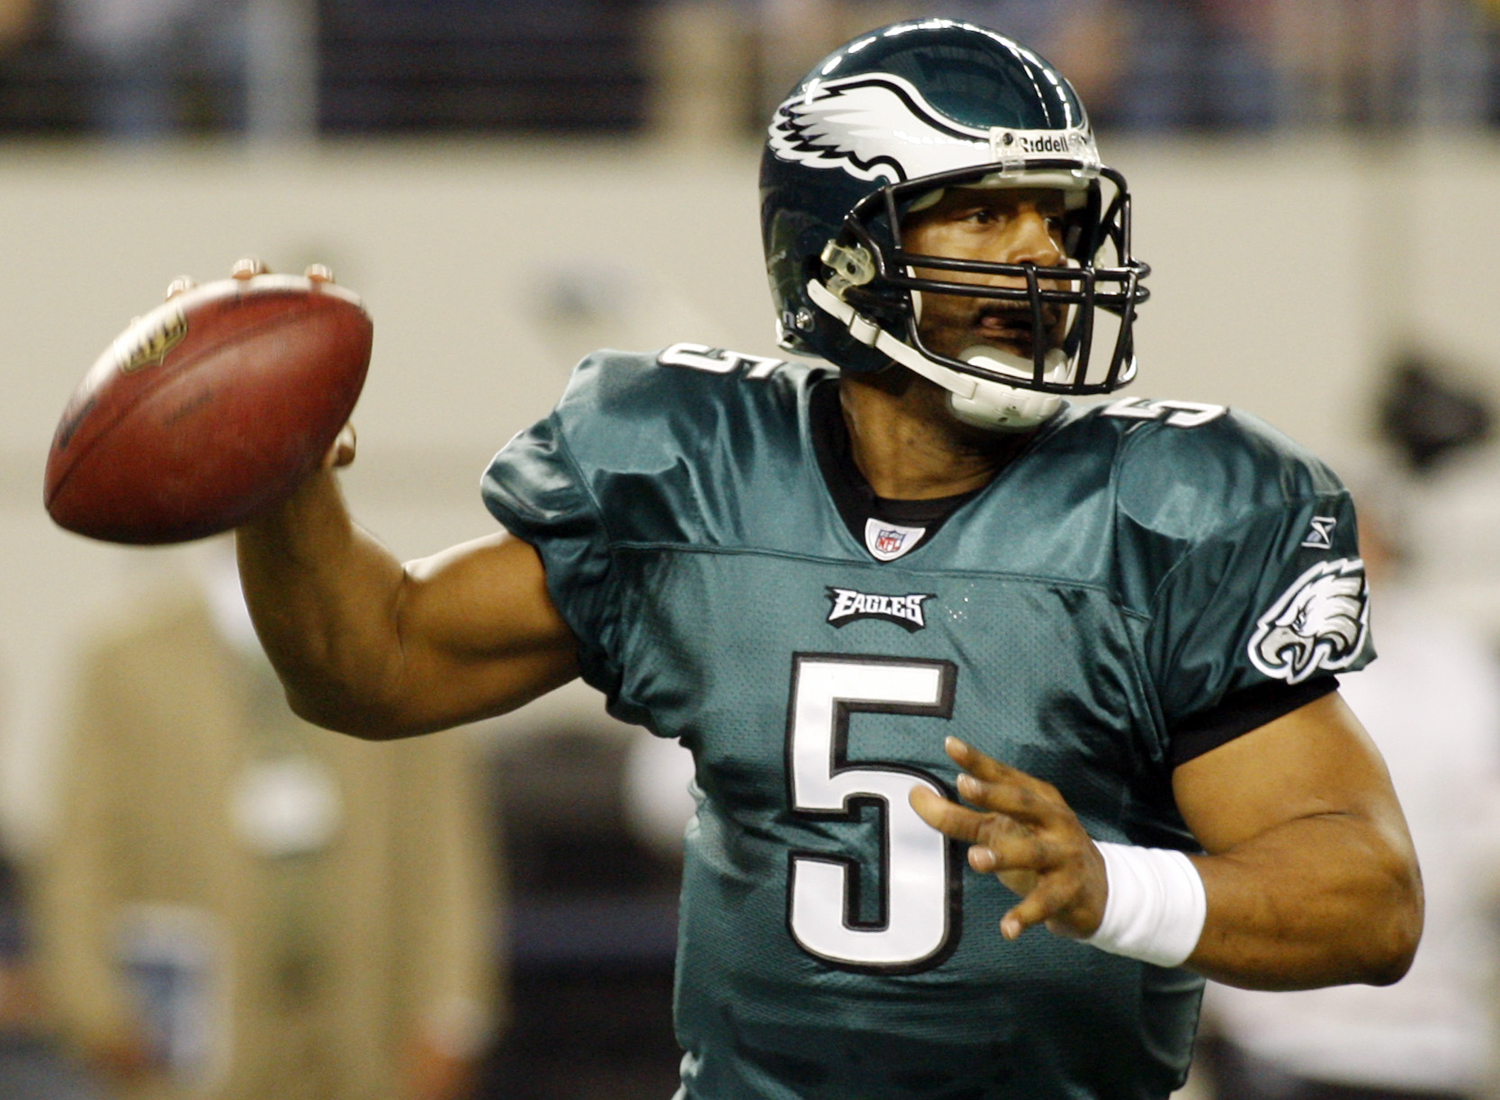 1999 NFL Draft, first round, Philadelphia Eagles -- McNabb played 11 seasons for the Eagles (1999-2009), one season for the Washington Redskins (2010) and one season for the Minnesota Vikings (2011). He led the Eagles to Super Bowl XXXIX and was a six-time Pro Bowl selection. (AP Photo/Sharon Ellman)